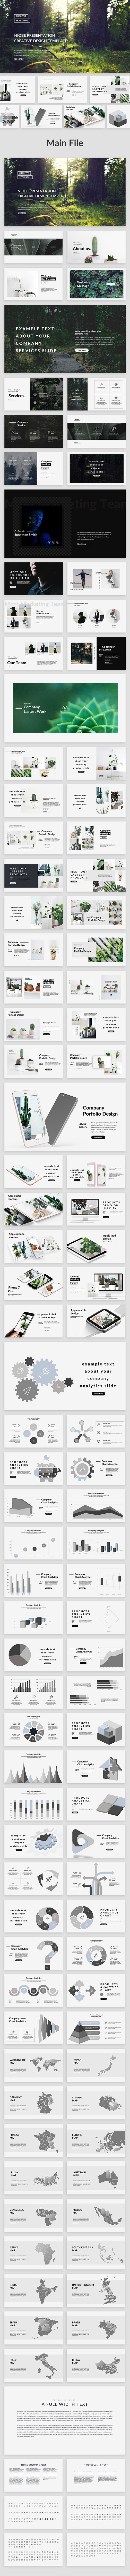 Niobe - Creative Powerpoint Template - Creative PowerPoint Templates